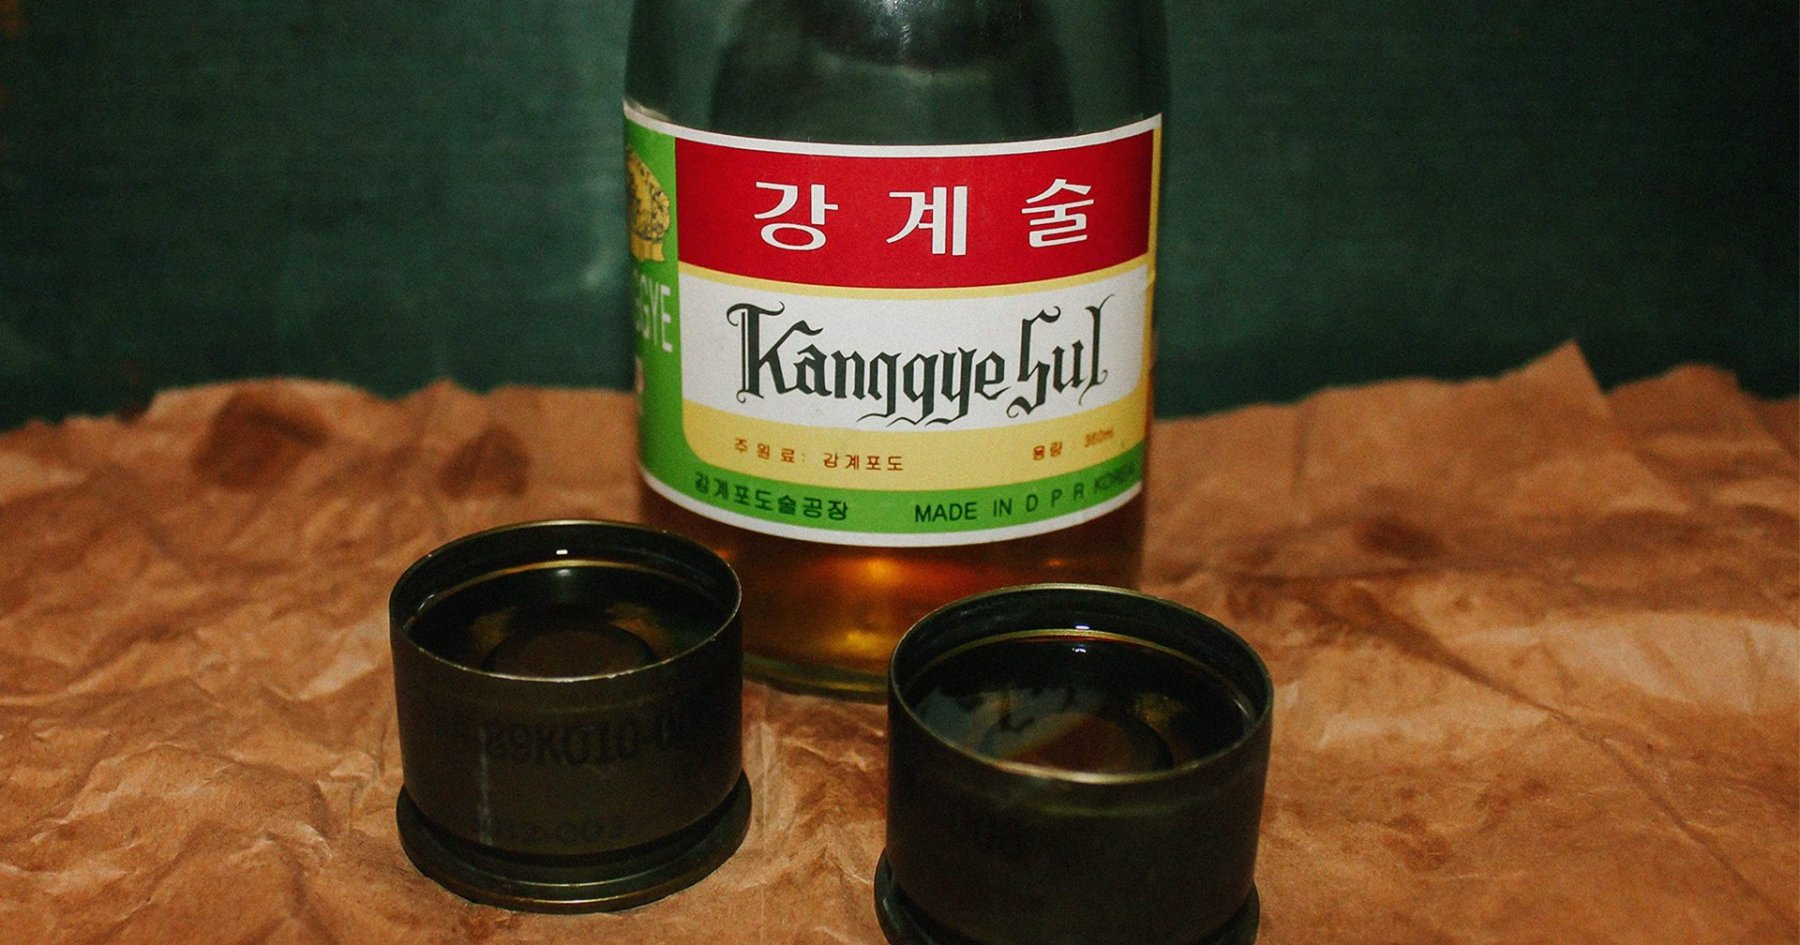 I Drank North Korean Booze and Lived to Tell About It